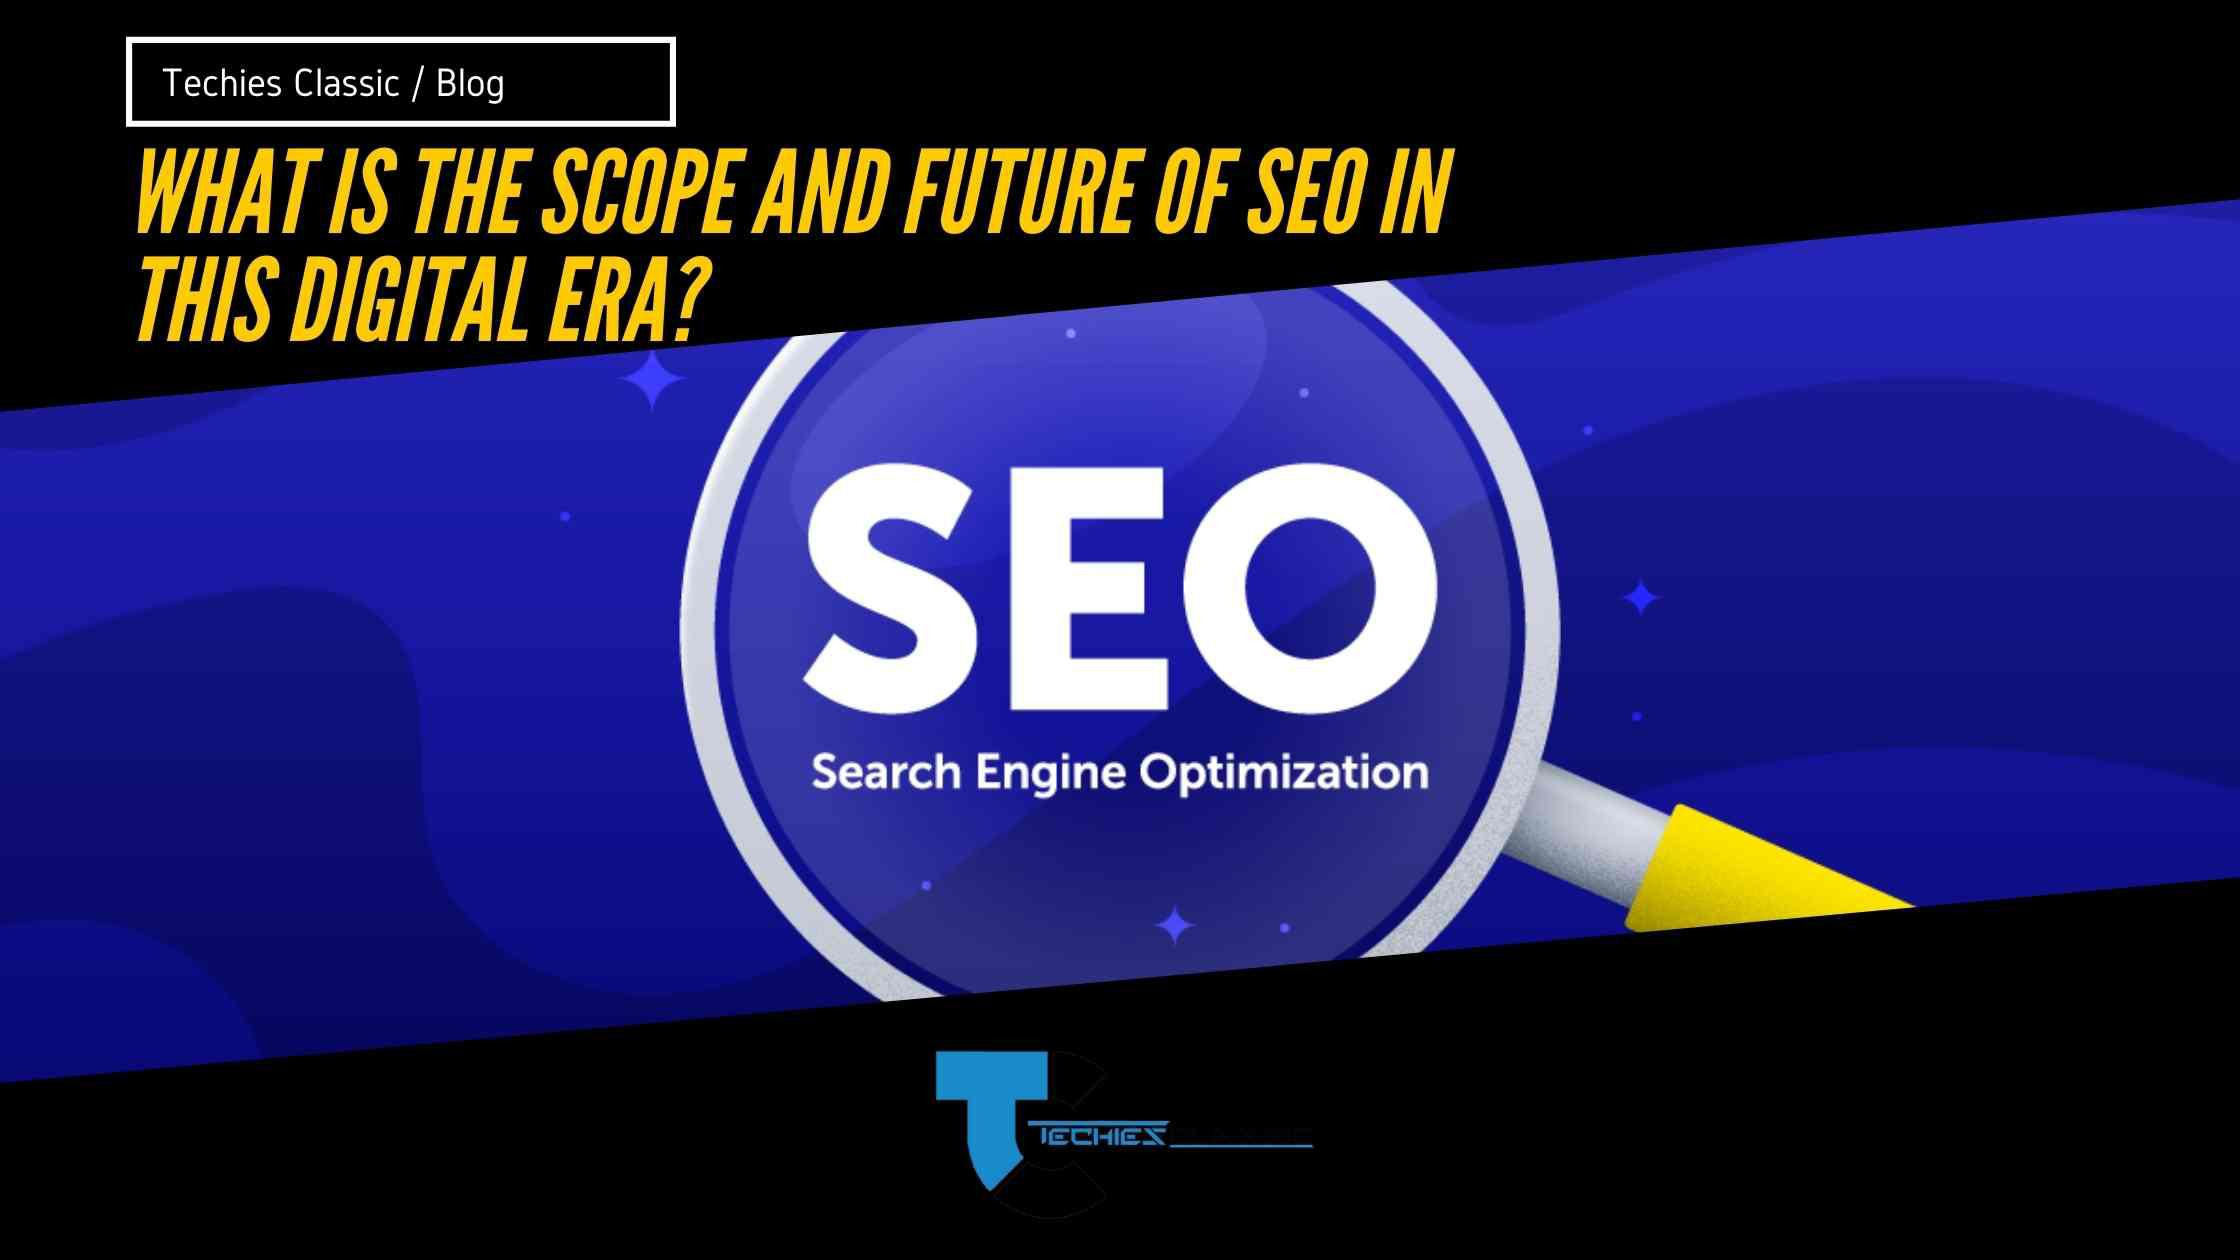 What is the Scope And future of SEO in this digital era?